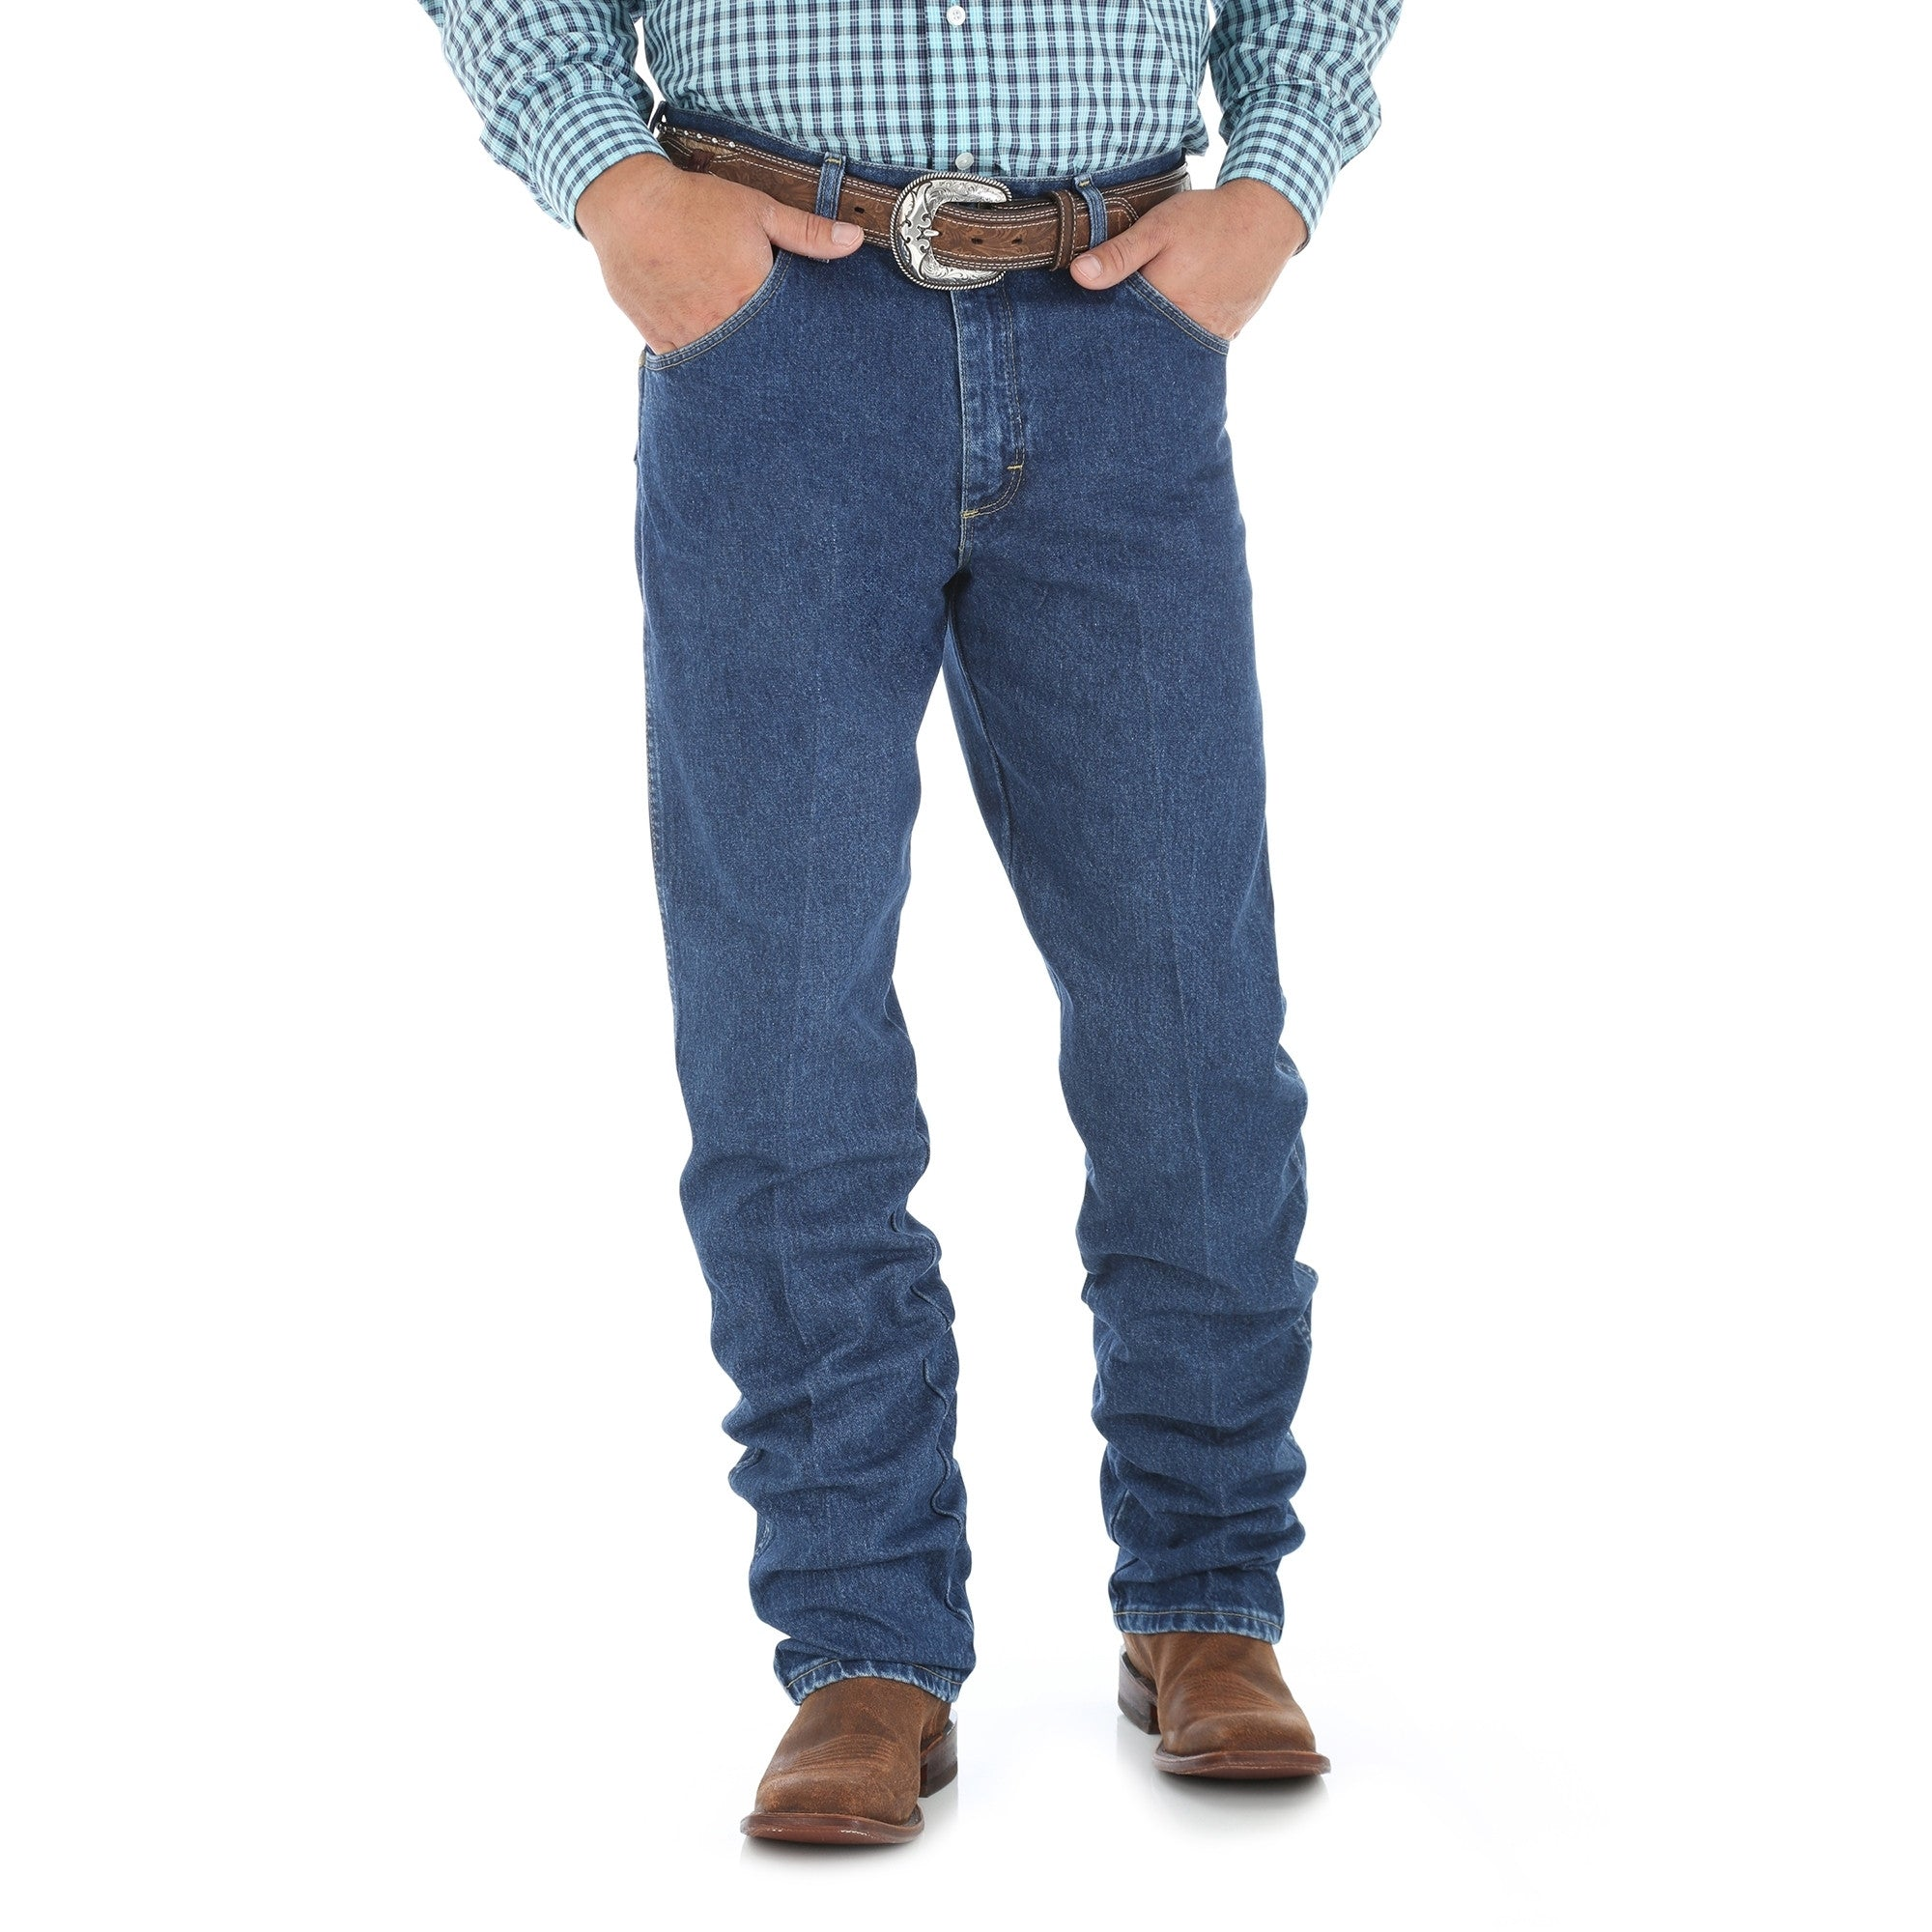 Men's Wrangler George Strait Cowboy Cut Relaxed Fit Jean #31MGSHD (Tall)